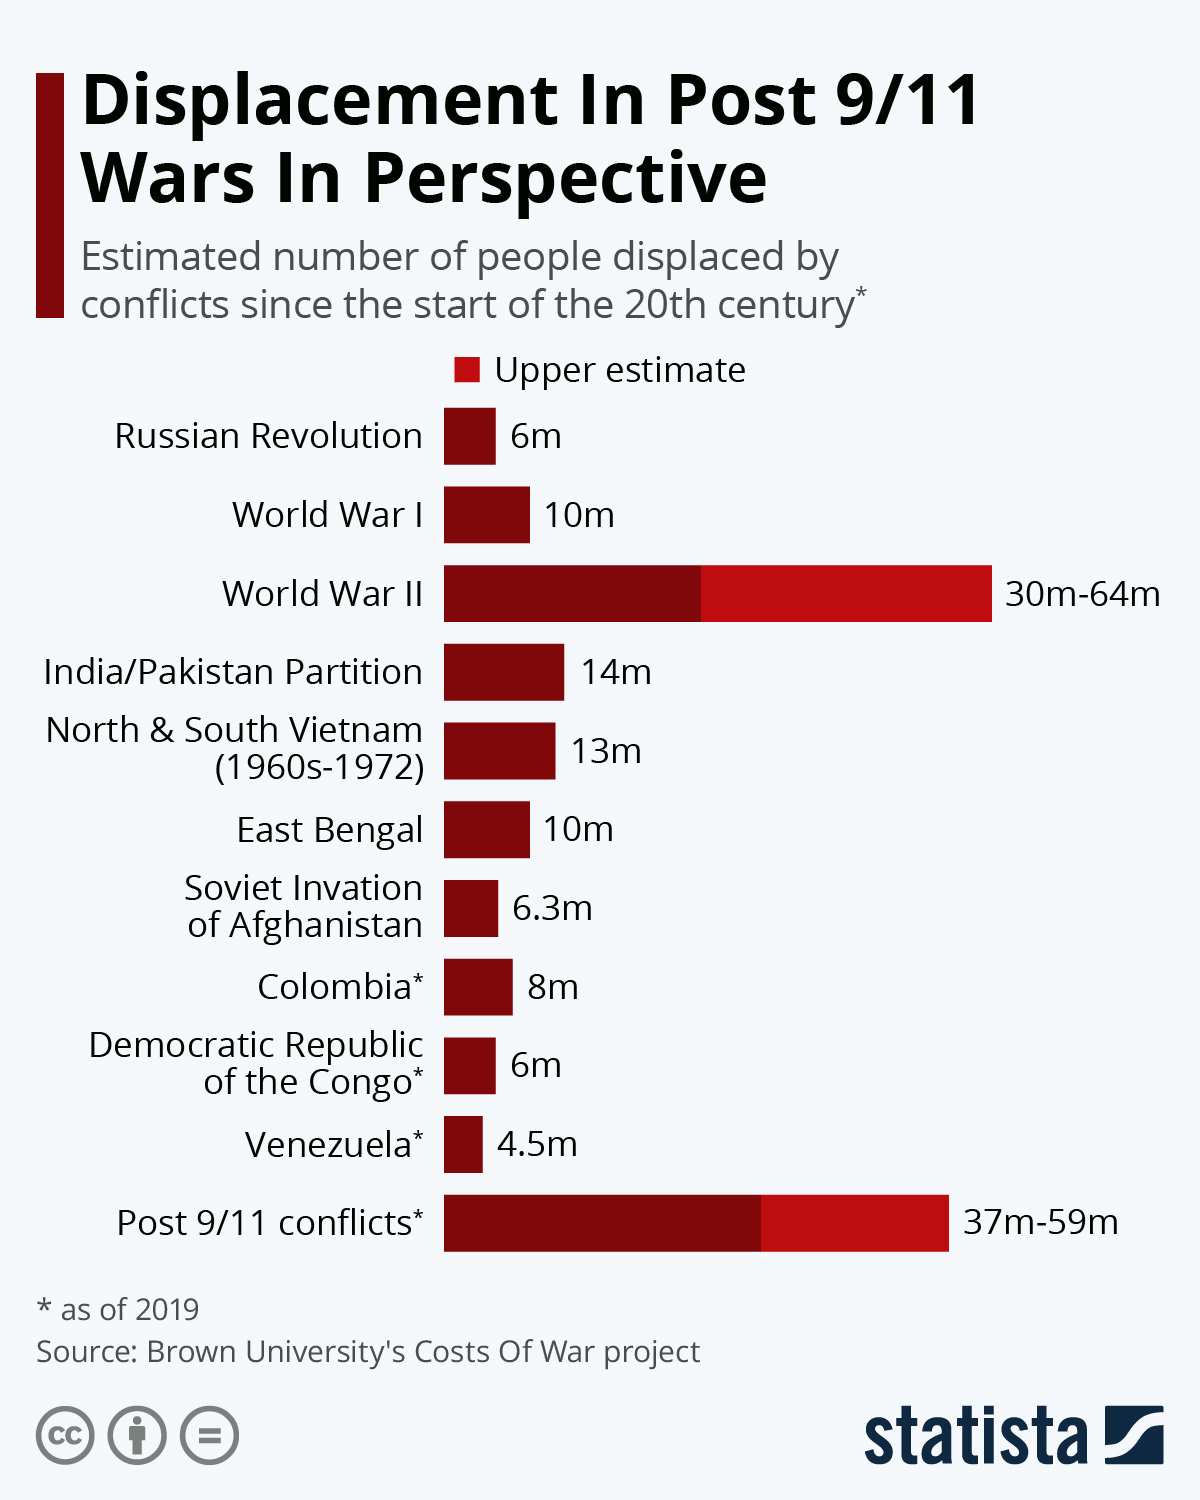 Displacement In Post 9/11 Wars In Perspective #infographic